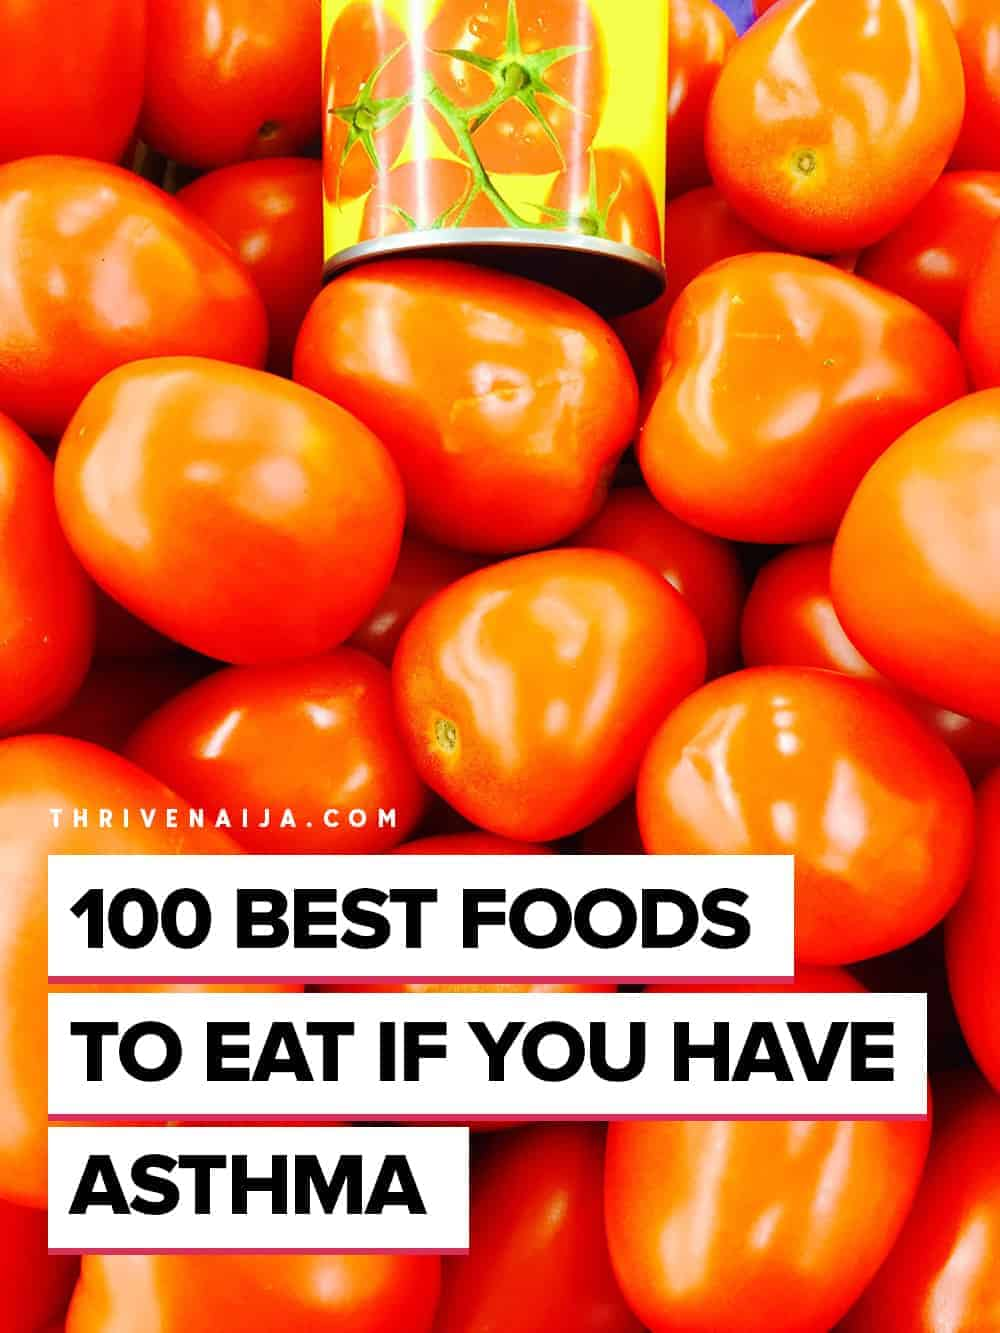 Best Foods to Eat If You Have Asthma